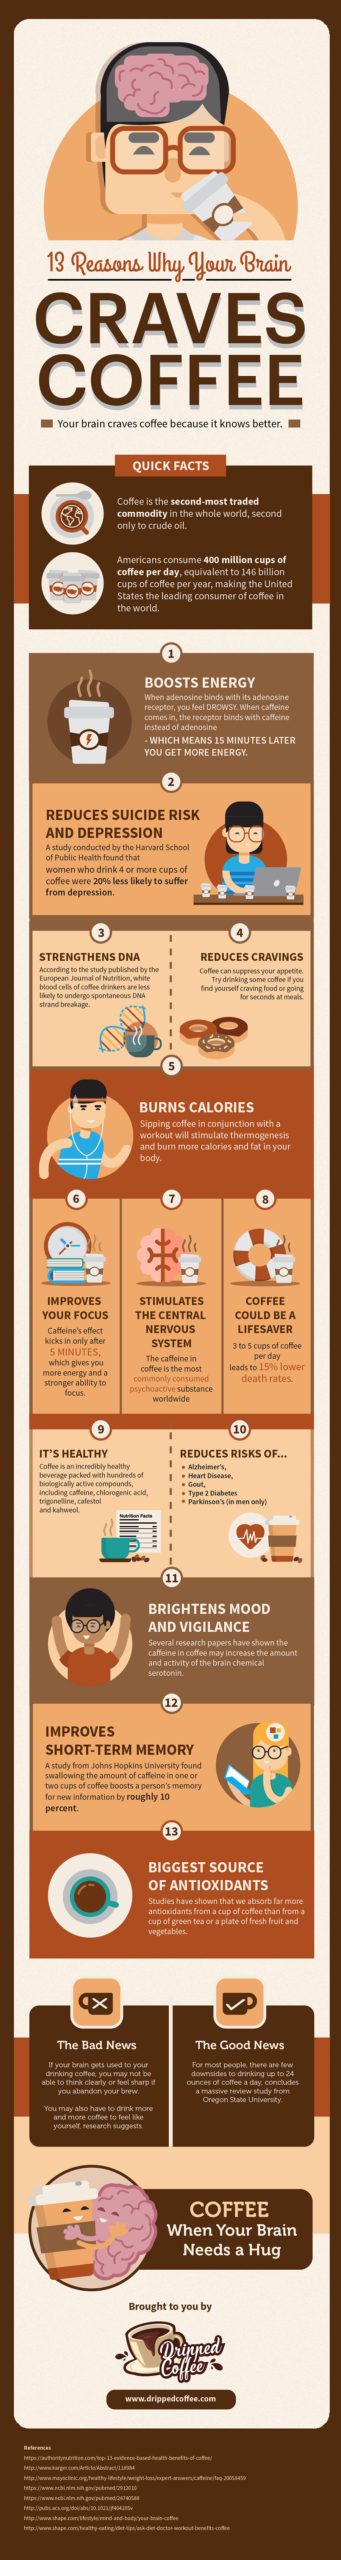 Benefits drinking coffee infographic